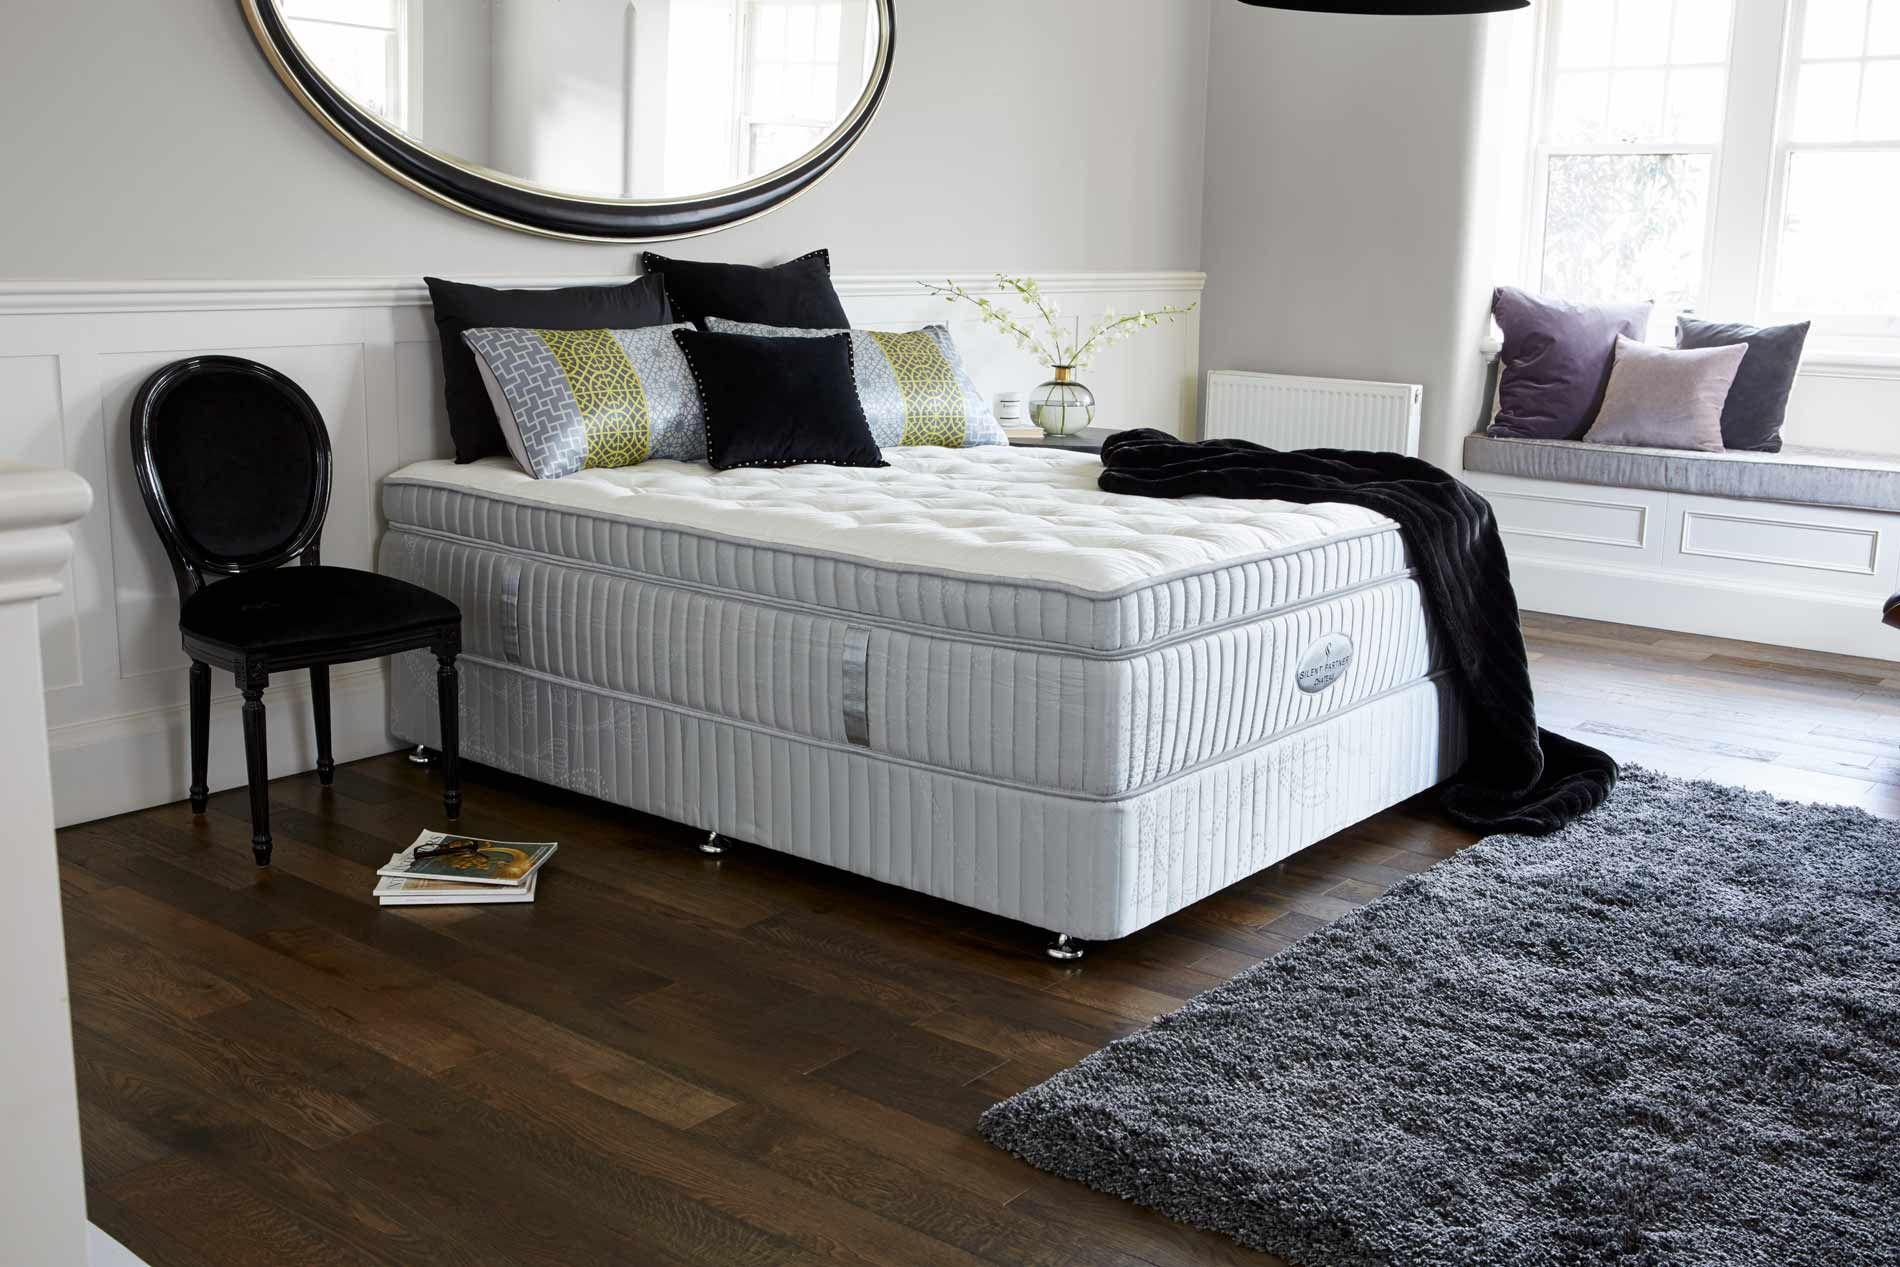 CHATEAU MEDIUM QB MATTRESS image 1